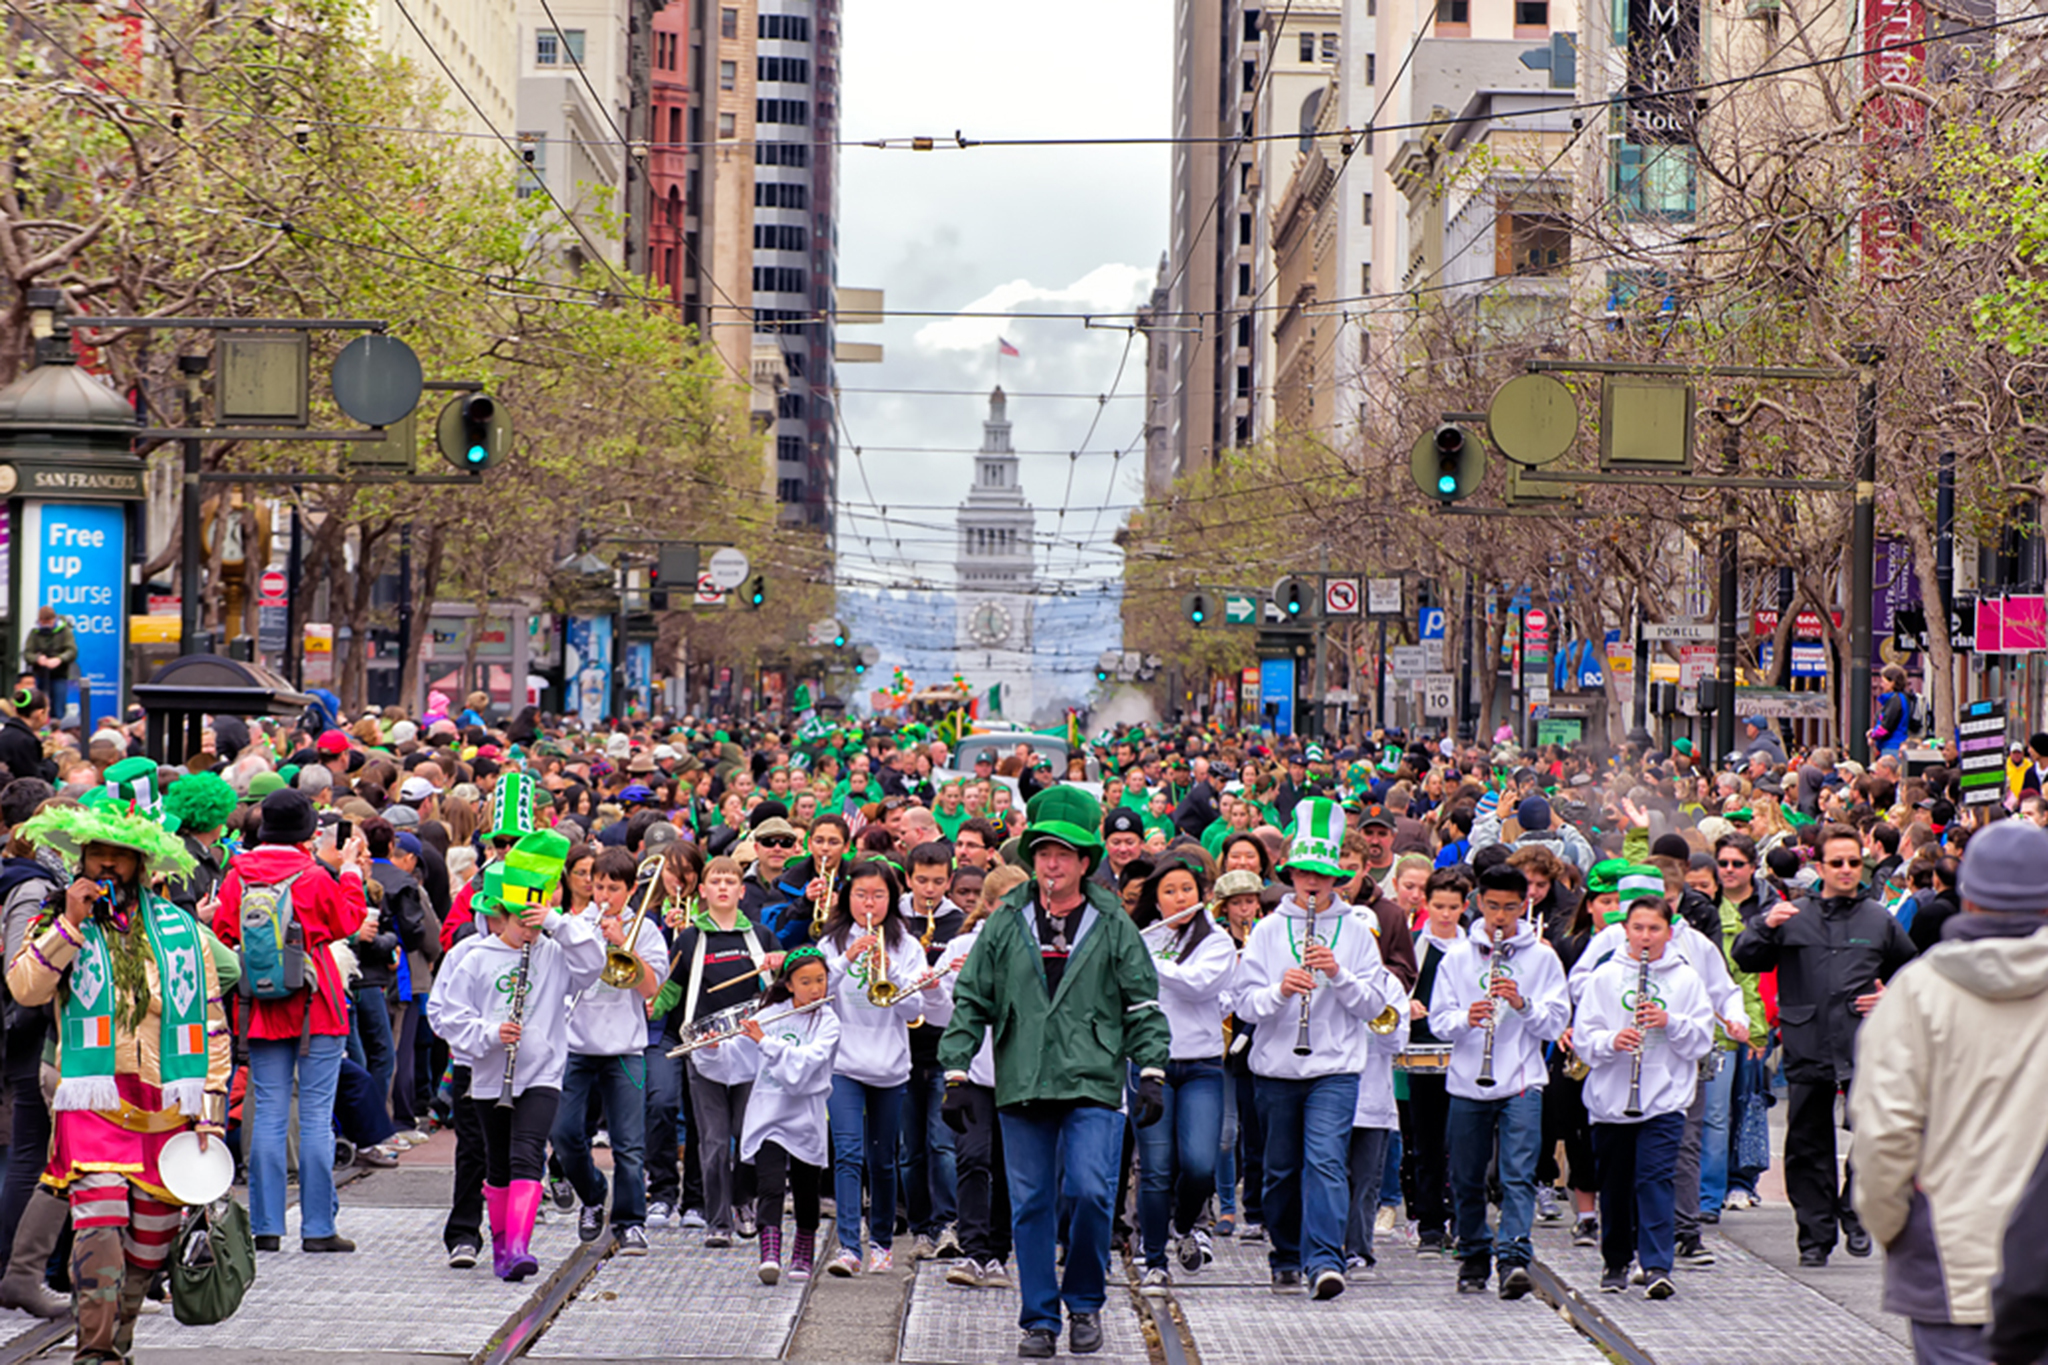 5 St. Patrick's Day events to check out in San Francisco this weekend